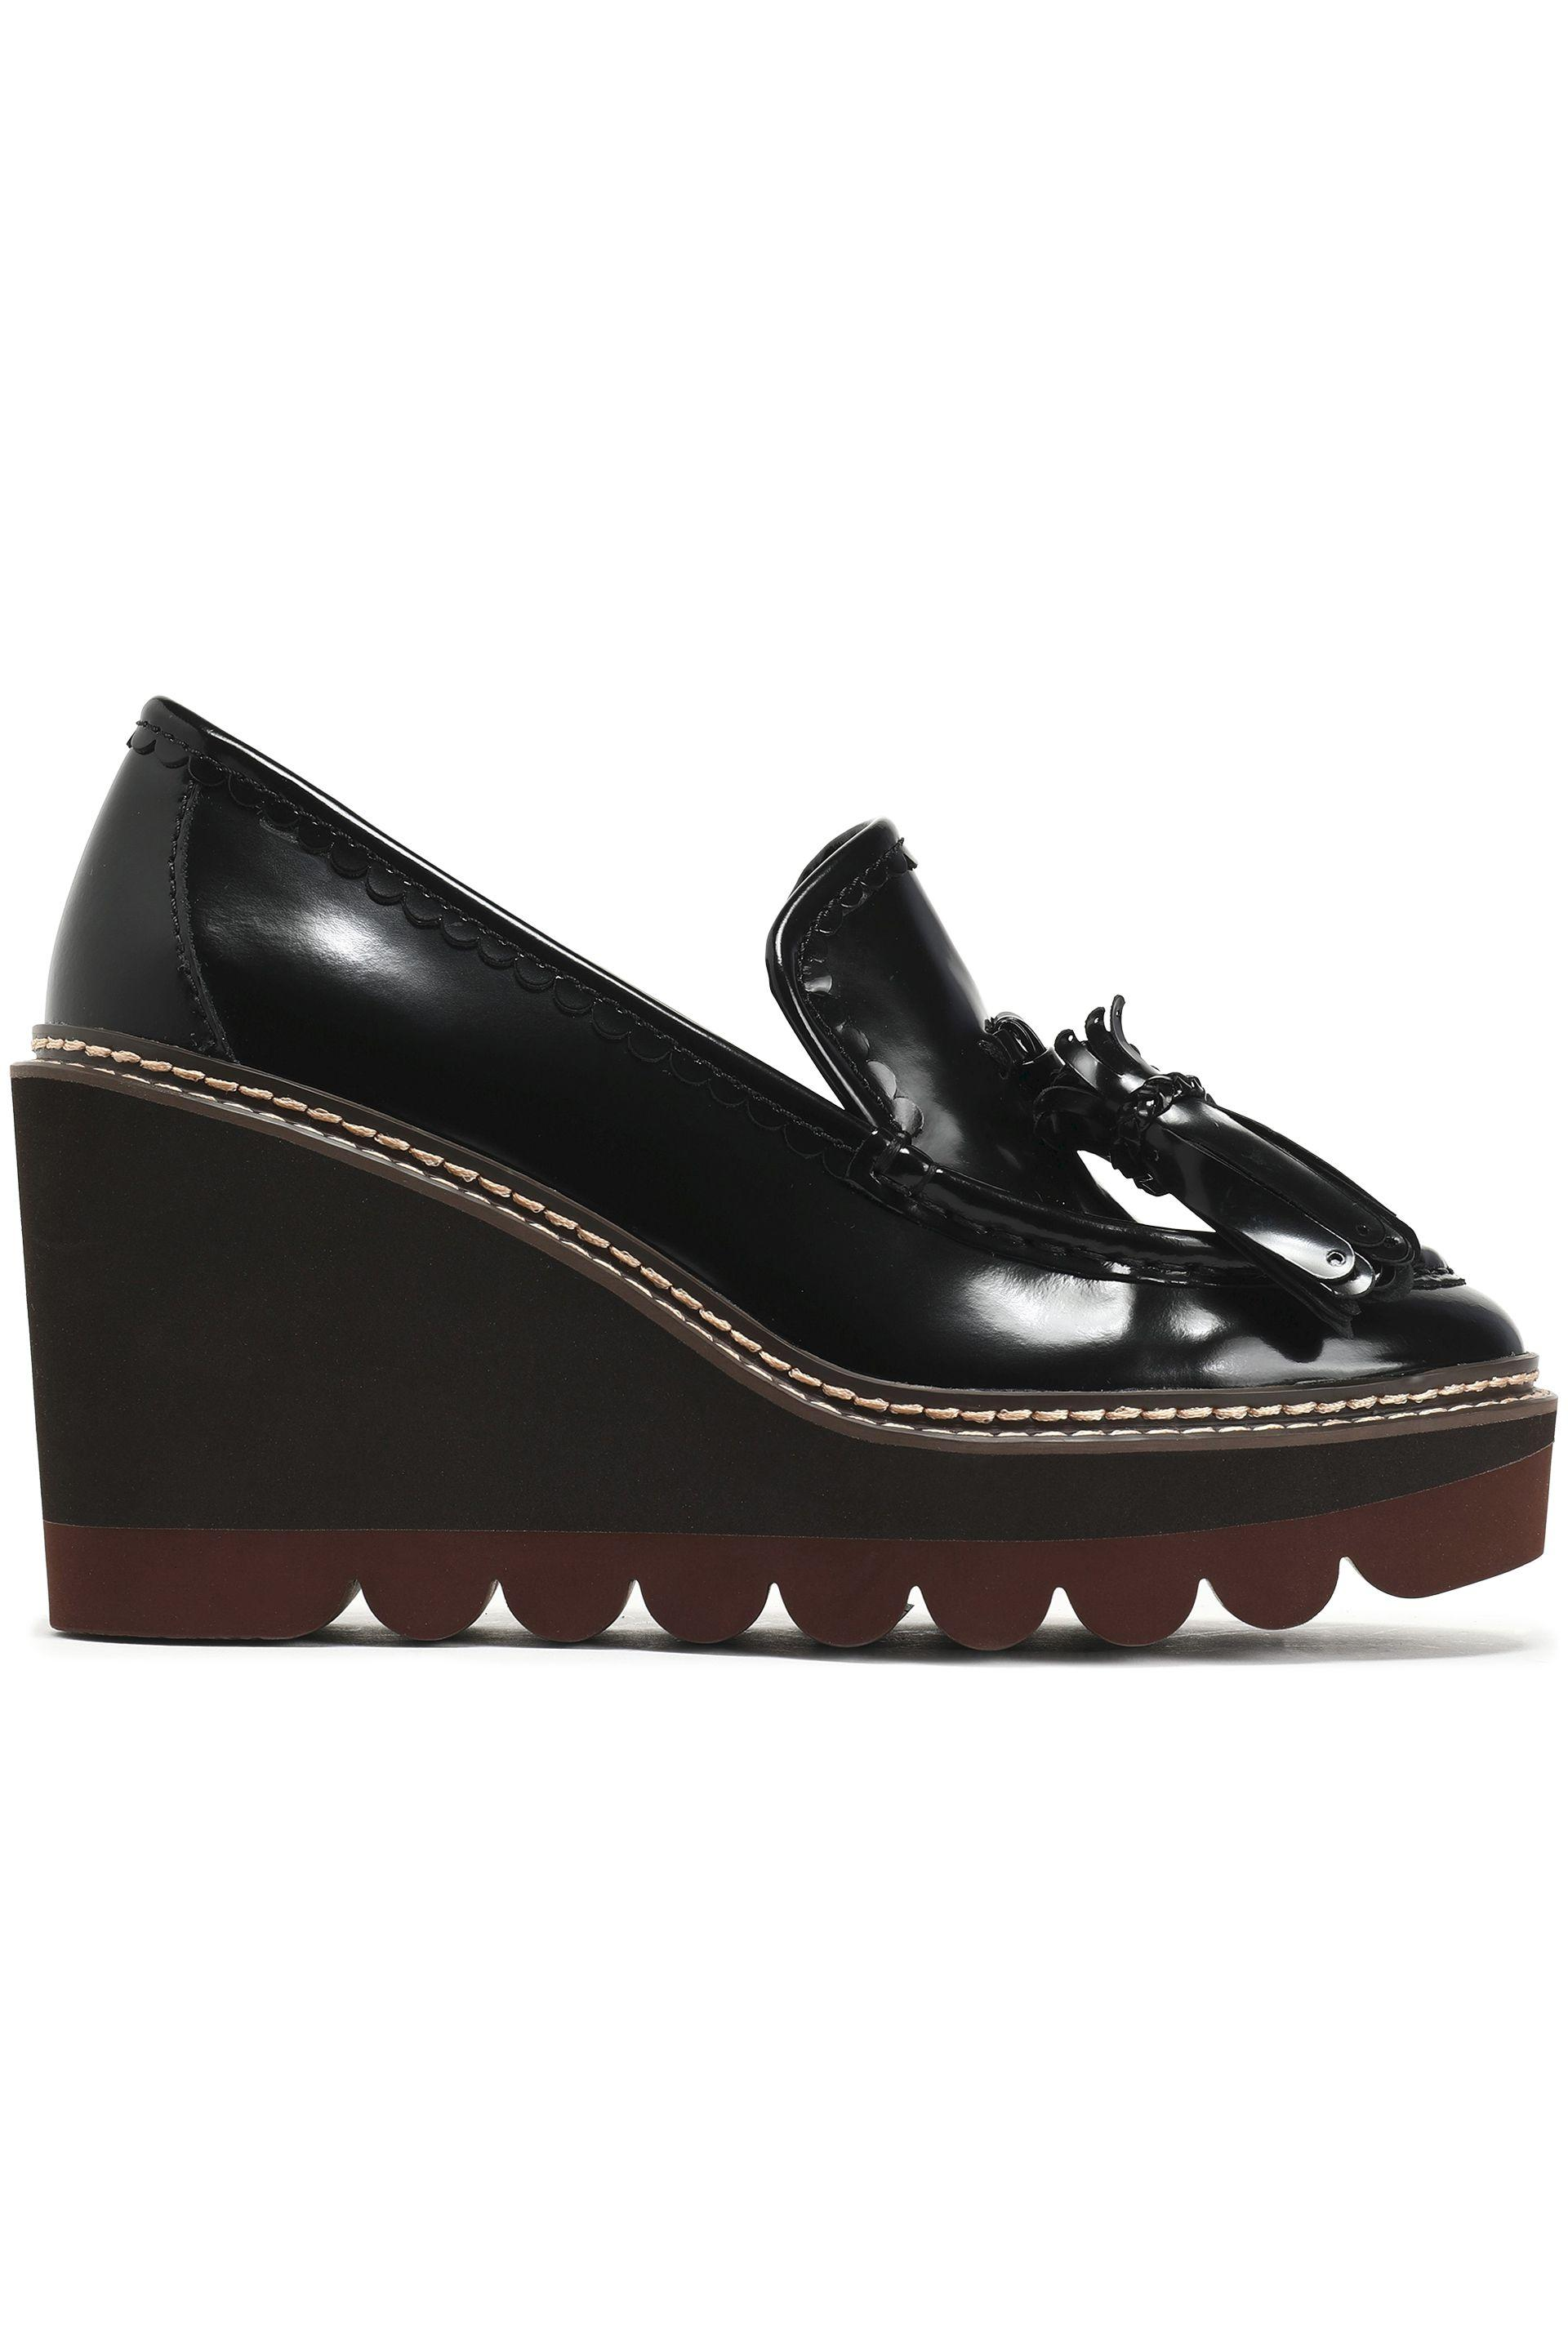 777429c2001ce See By Chloé. Women s See By Chloé Woman Zina Fringe-trimmed Patent-leather  Wedge Loafers Black